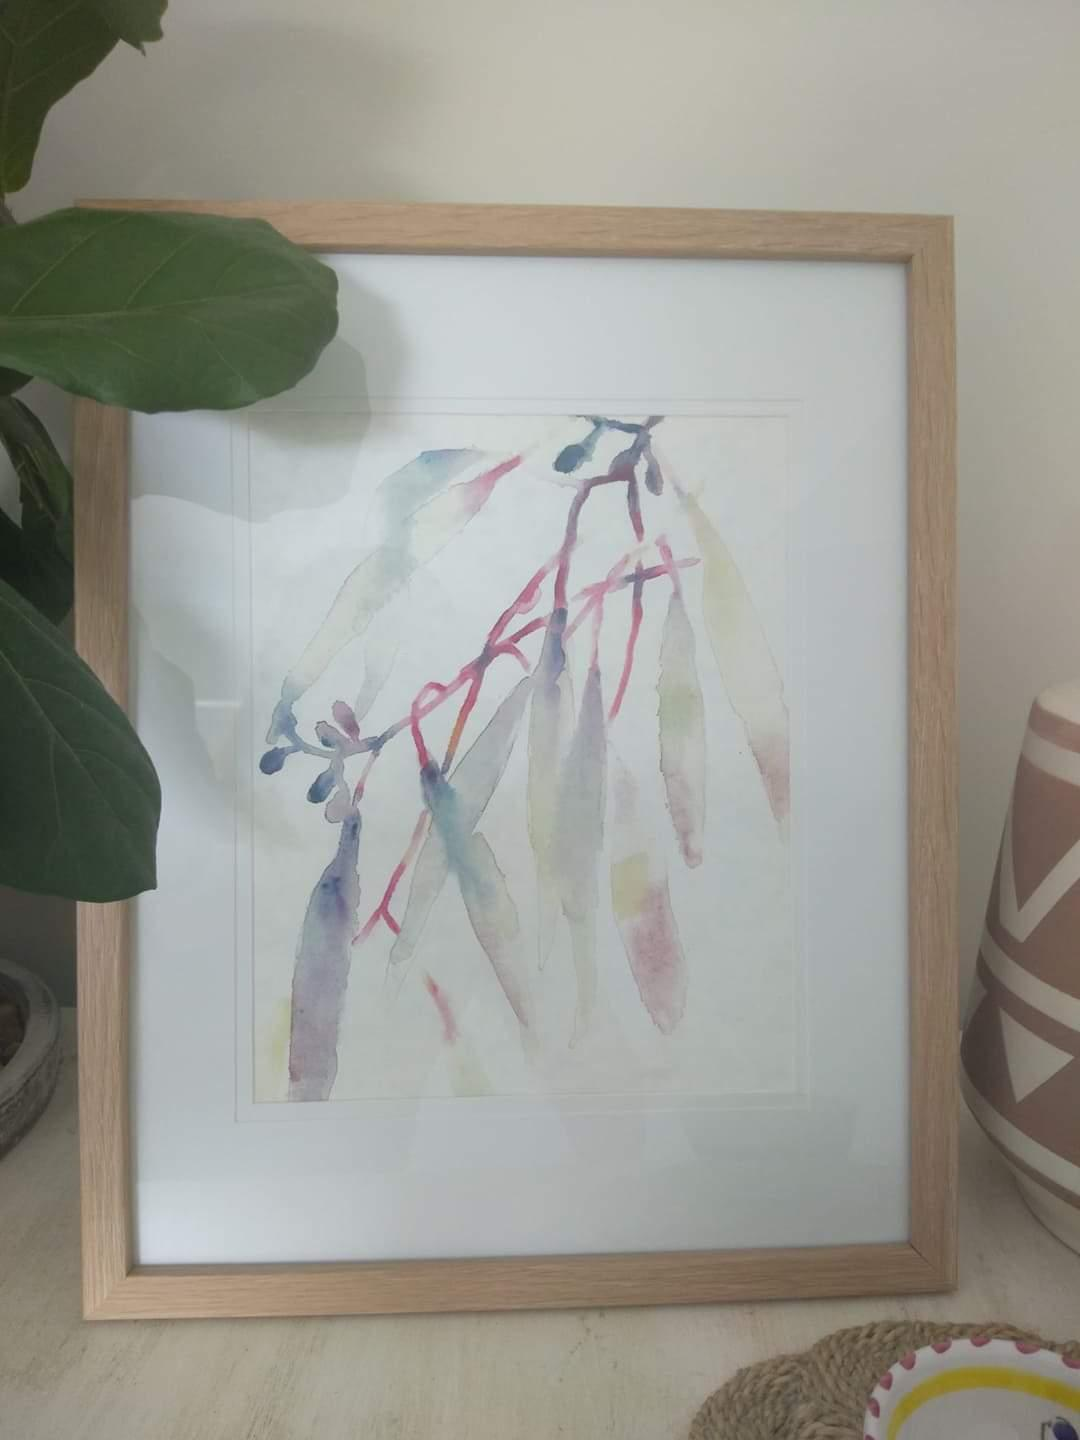 Aesthetic Australian art framed watercolour